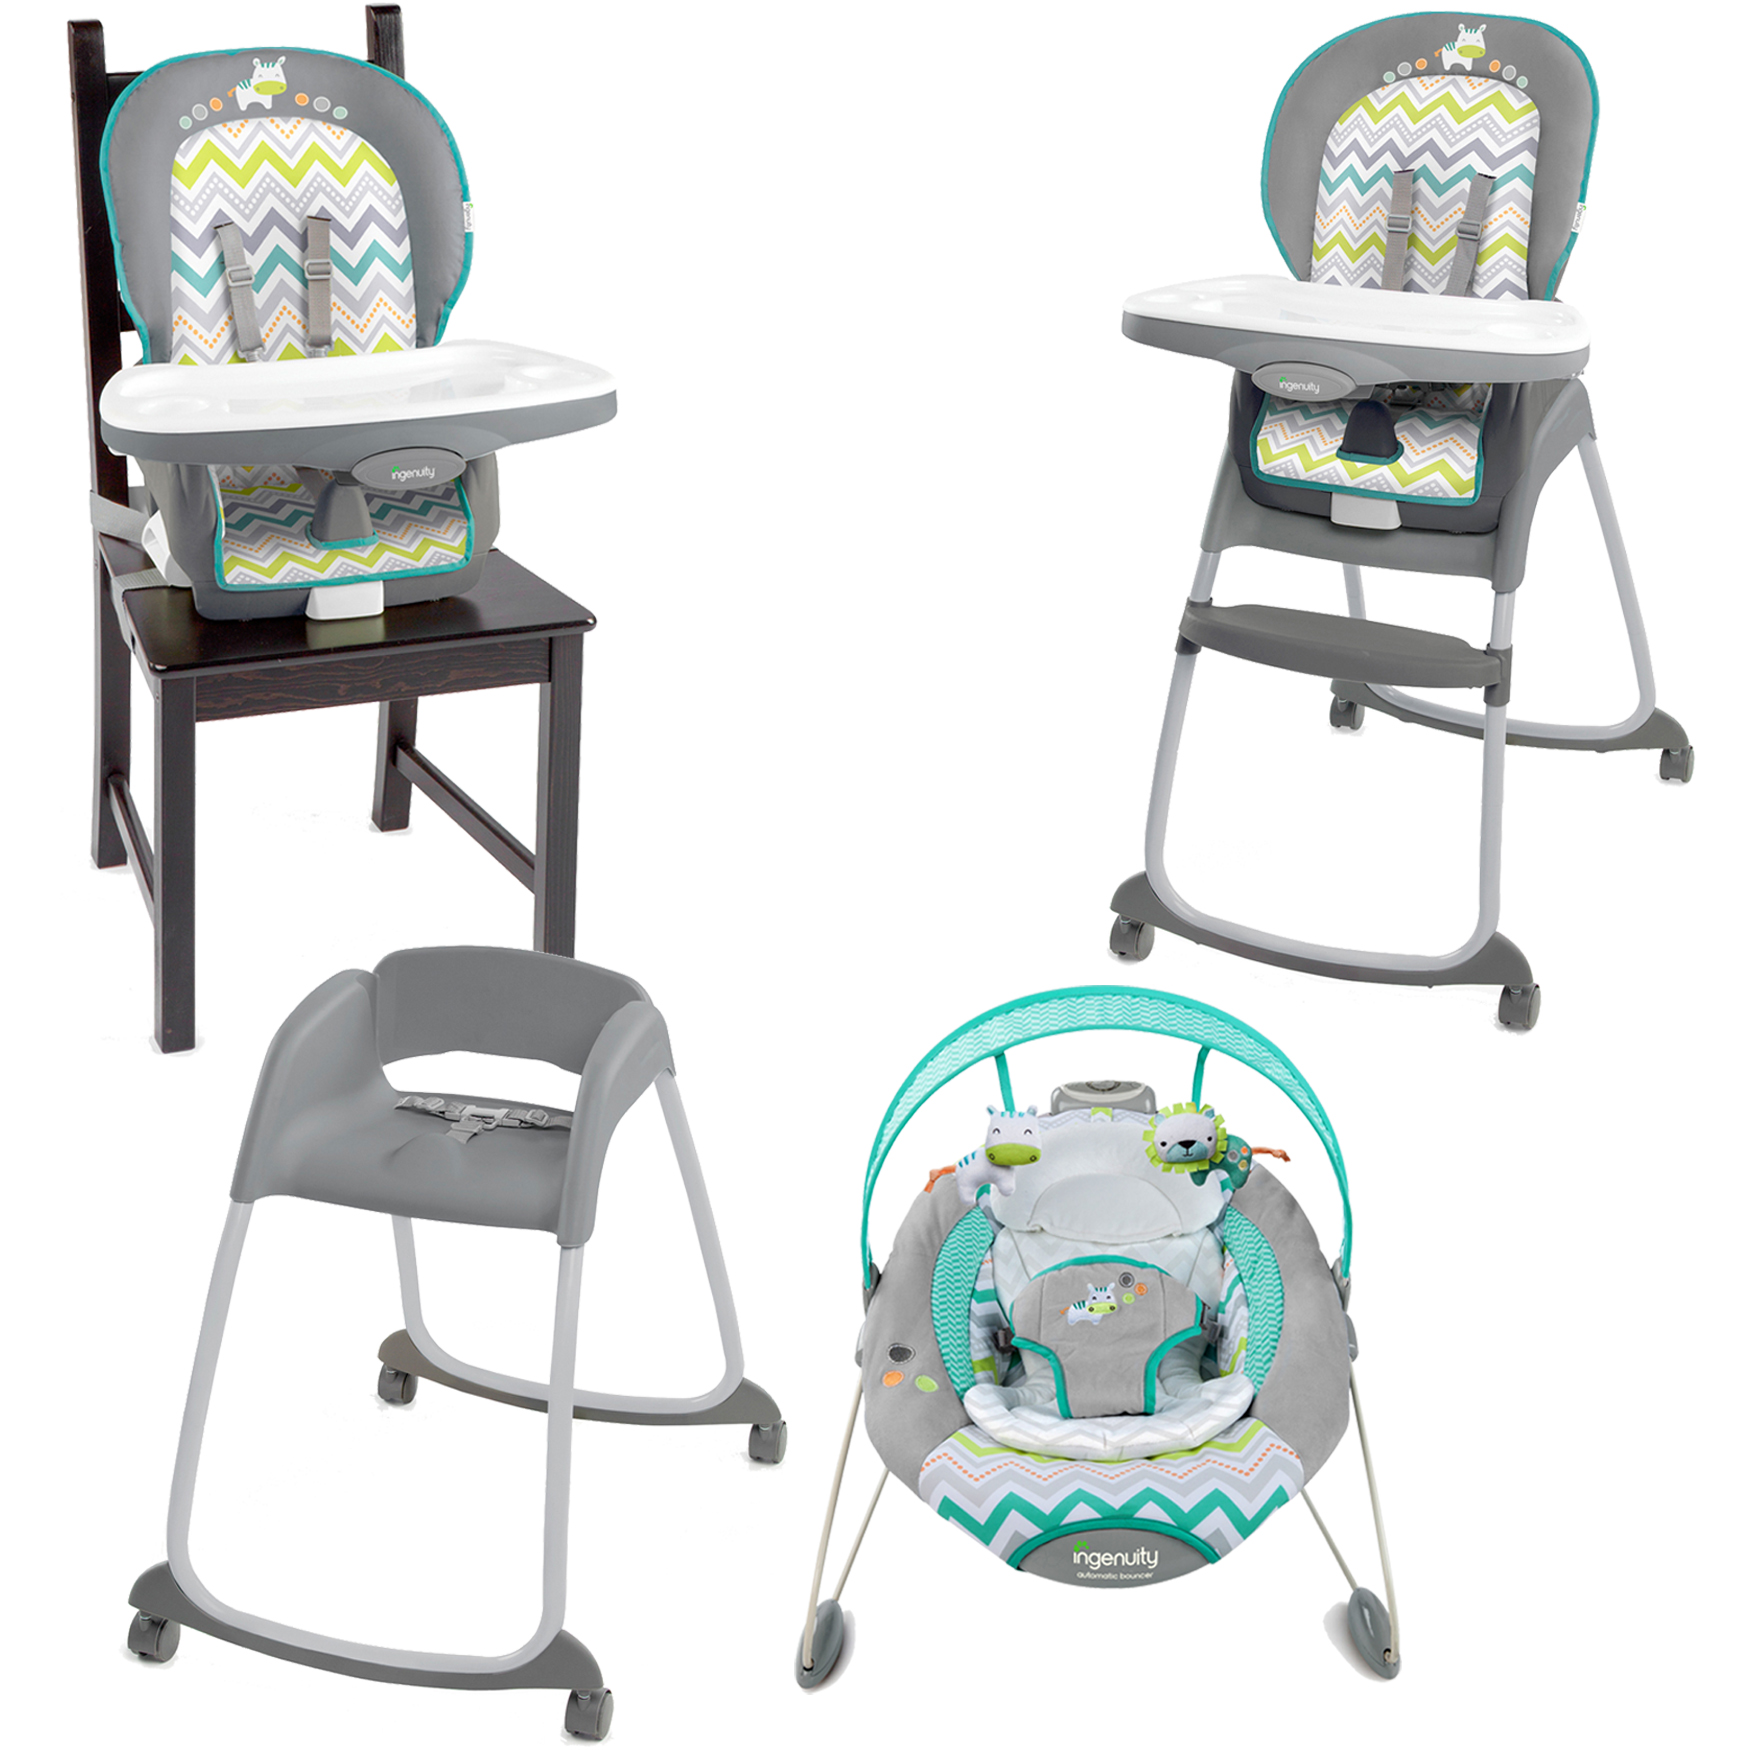 Ingenuity Ridgedale Collection High Chair and Bouncer Value Set